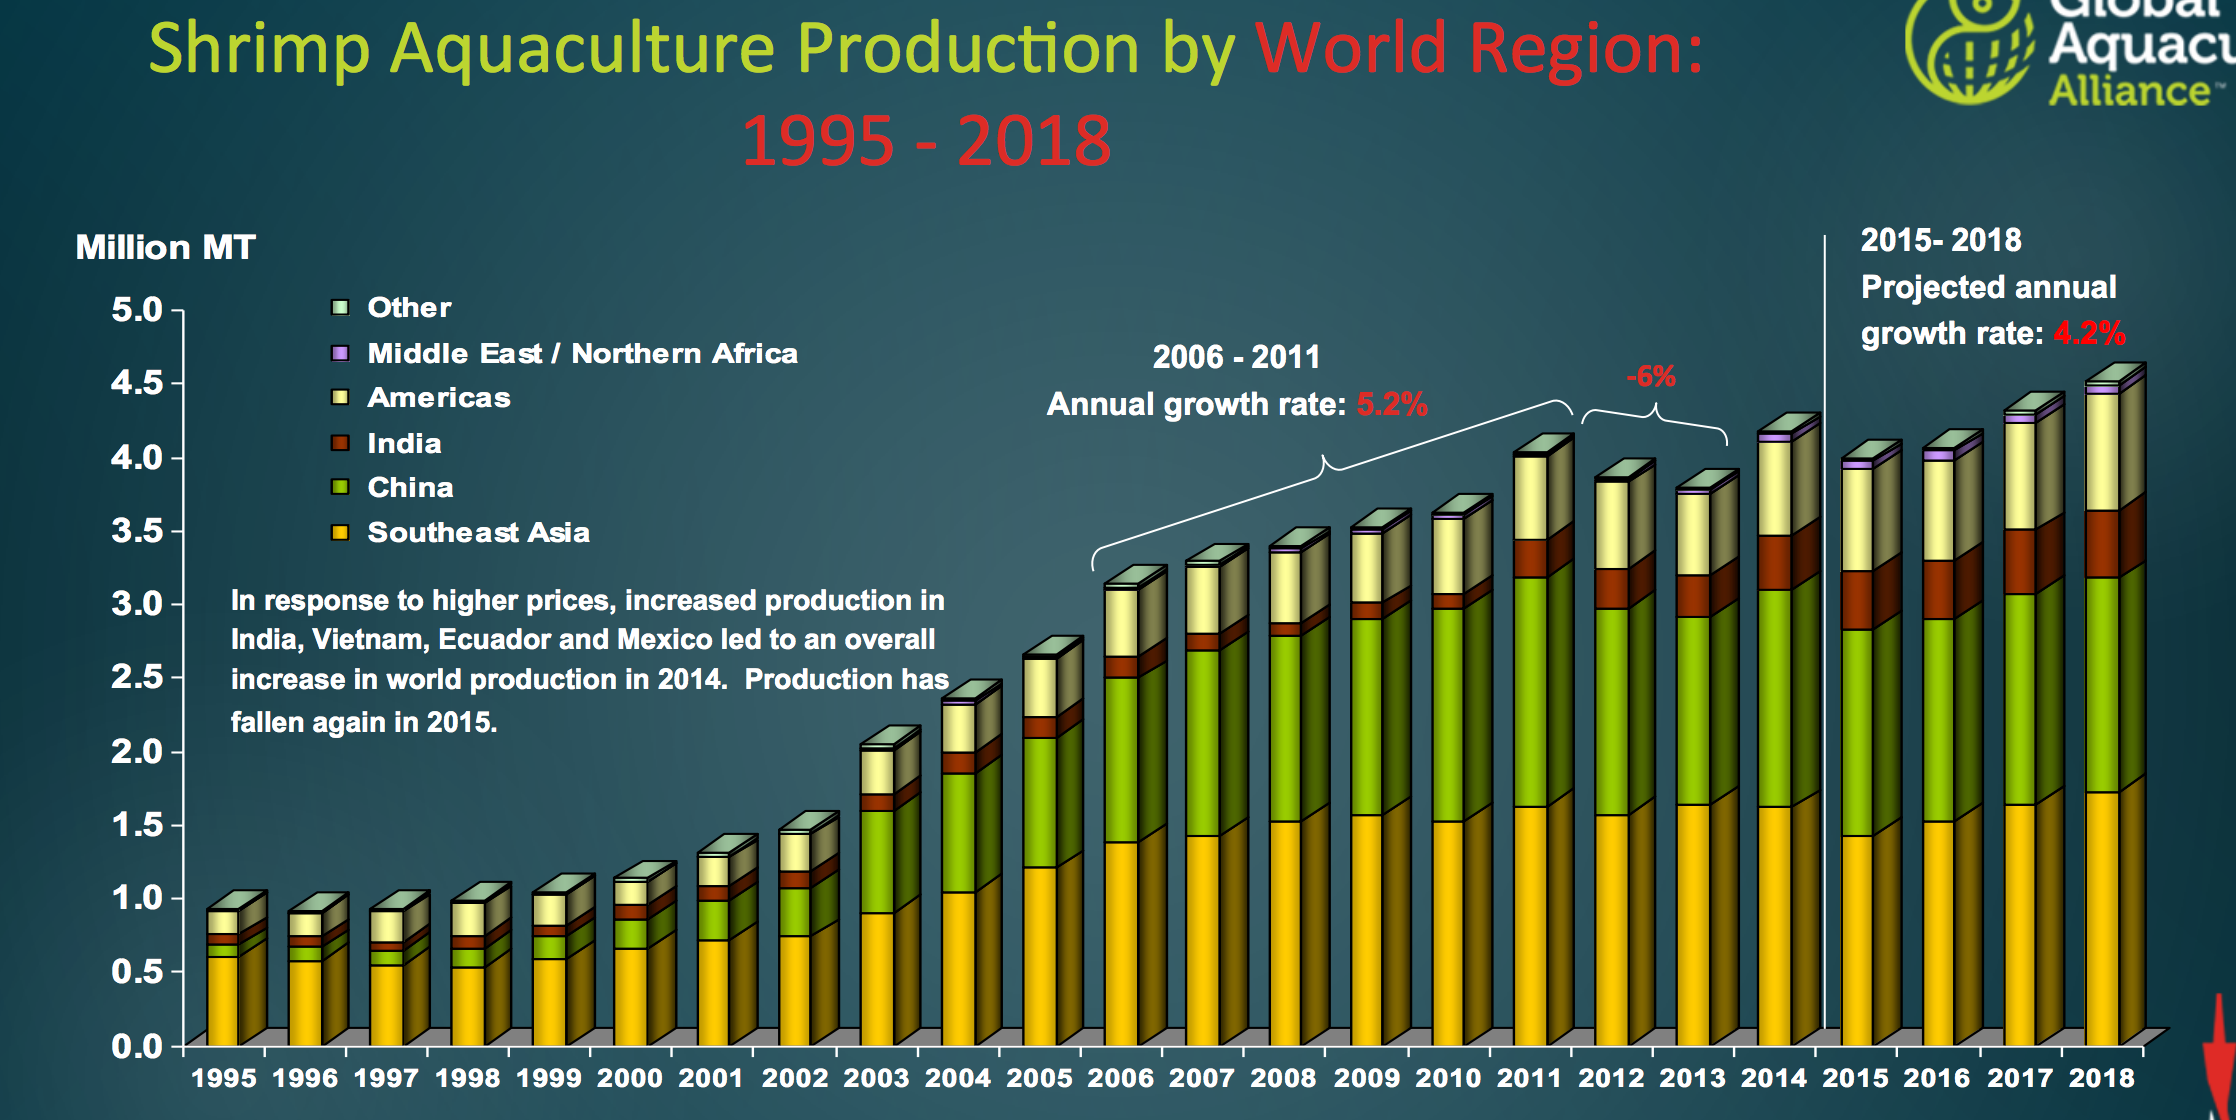 the world shrimp production Aquaculture—the breeding, rearing, and harvesting of animals and plants in all types of water environments—is one of the most resource-efficient ways to produce protein and has helped improve nutrition and food security in many parts of the world.